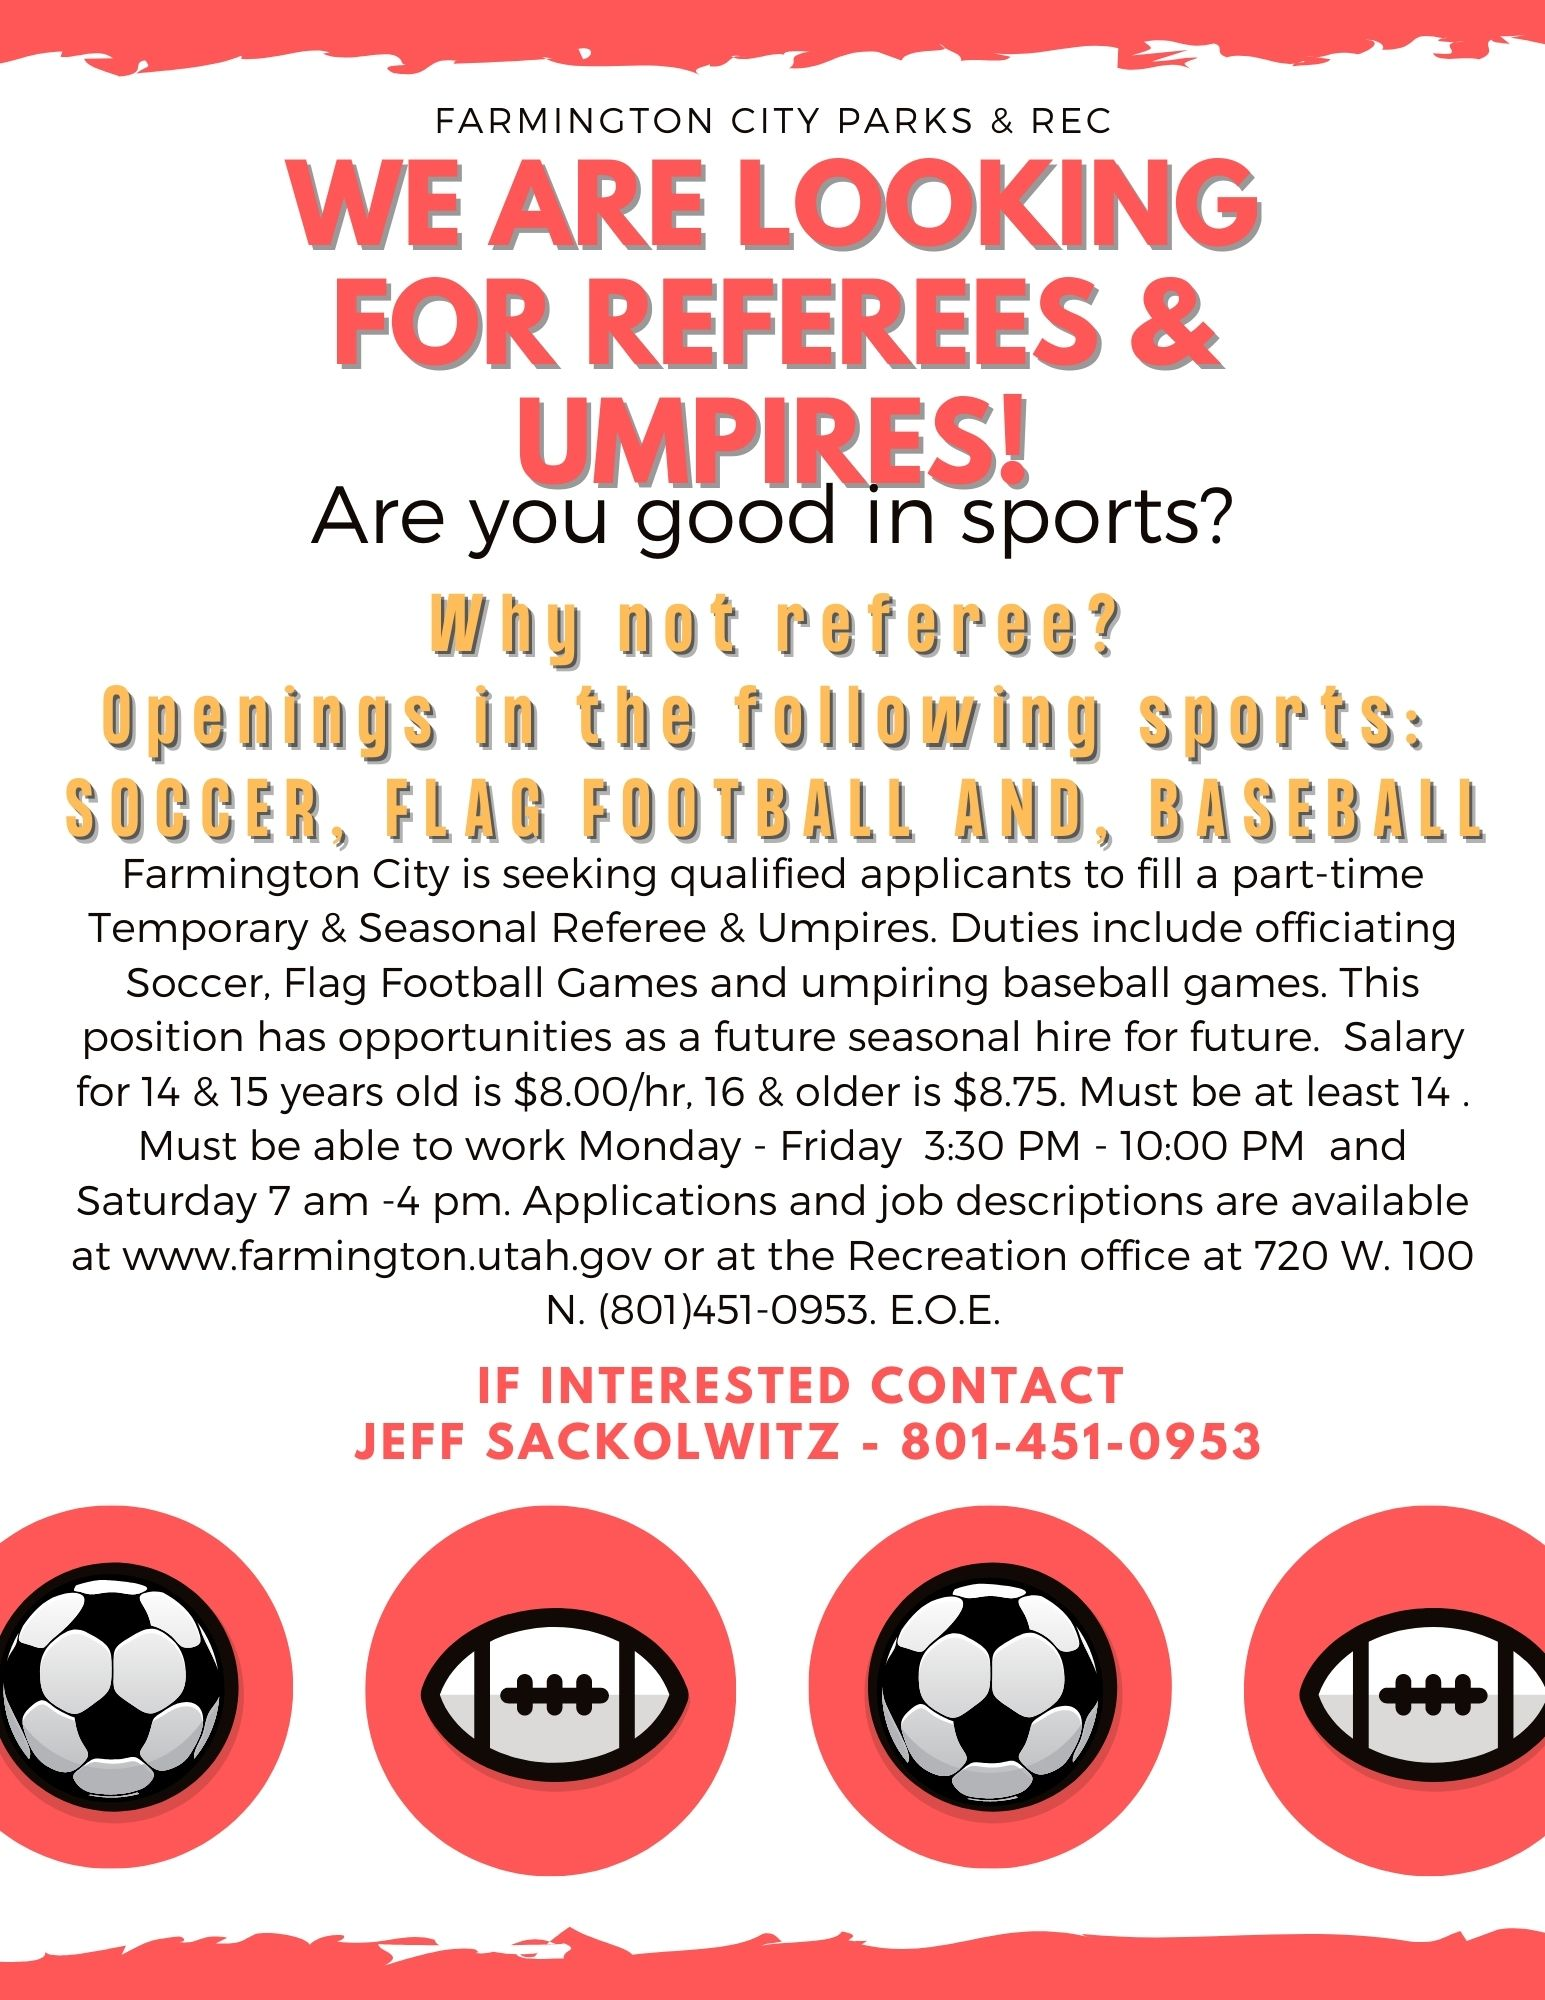 We are Looking for Referees!